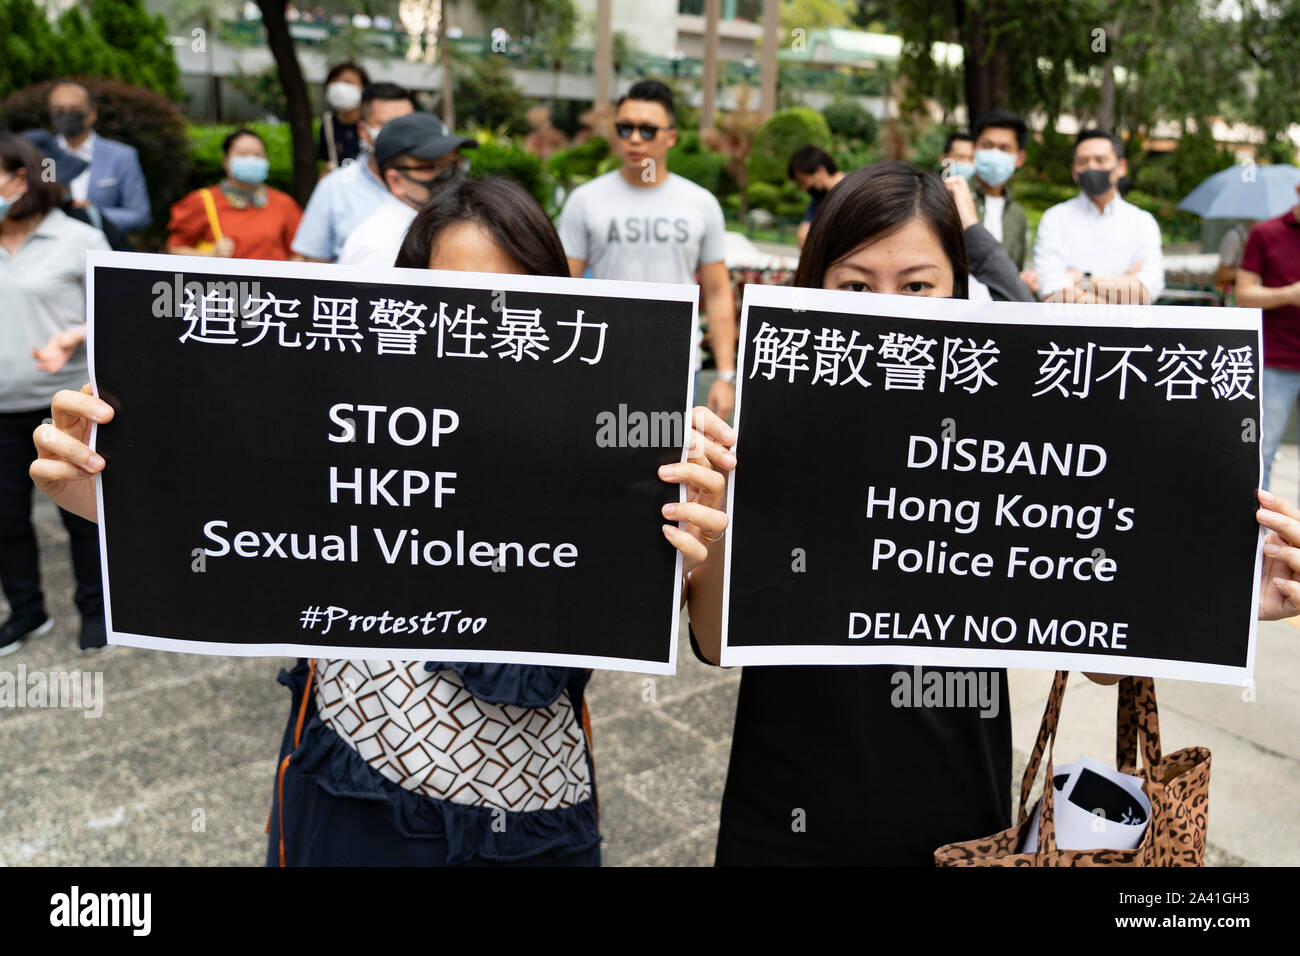 Hong Kong. 11th October 2019. Lunchtime flash mob demonstration by Pro-democracy demonstrators in Chater Square , Central District in Hong Kong. The protestors gathered to protest about treatment of those arrested by the police during Pro-democracy protests in the last 4 months. Police threatened to stop demonstration but it passed peacefully and concluded with march through city streets . Iain Masterton/Alamy Live News. Stock Photo